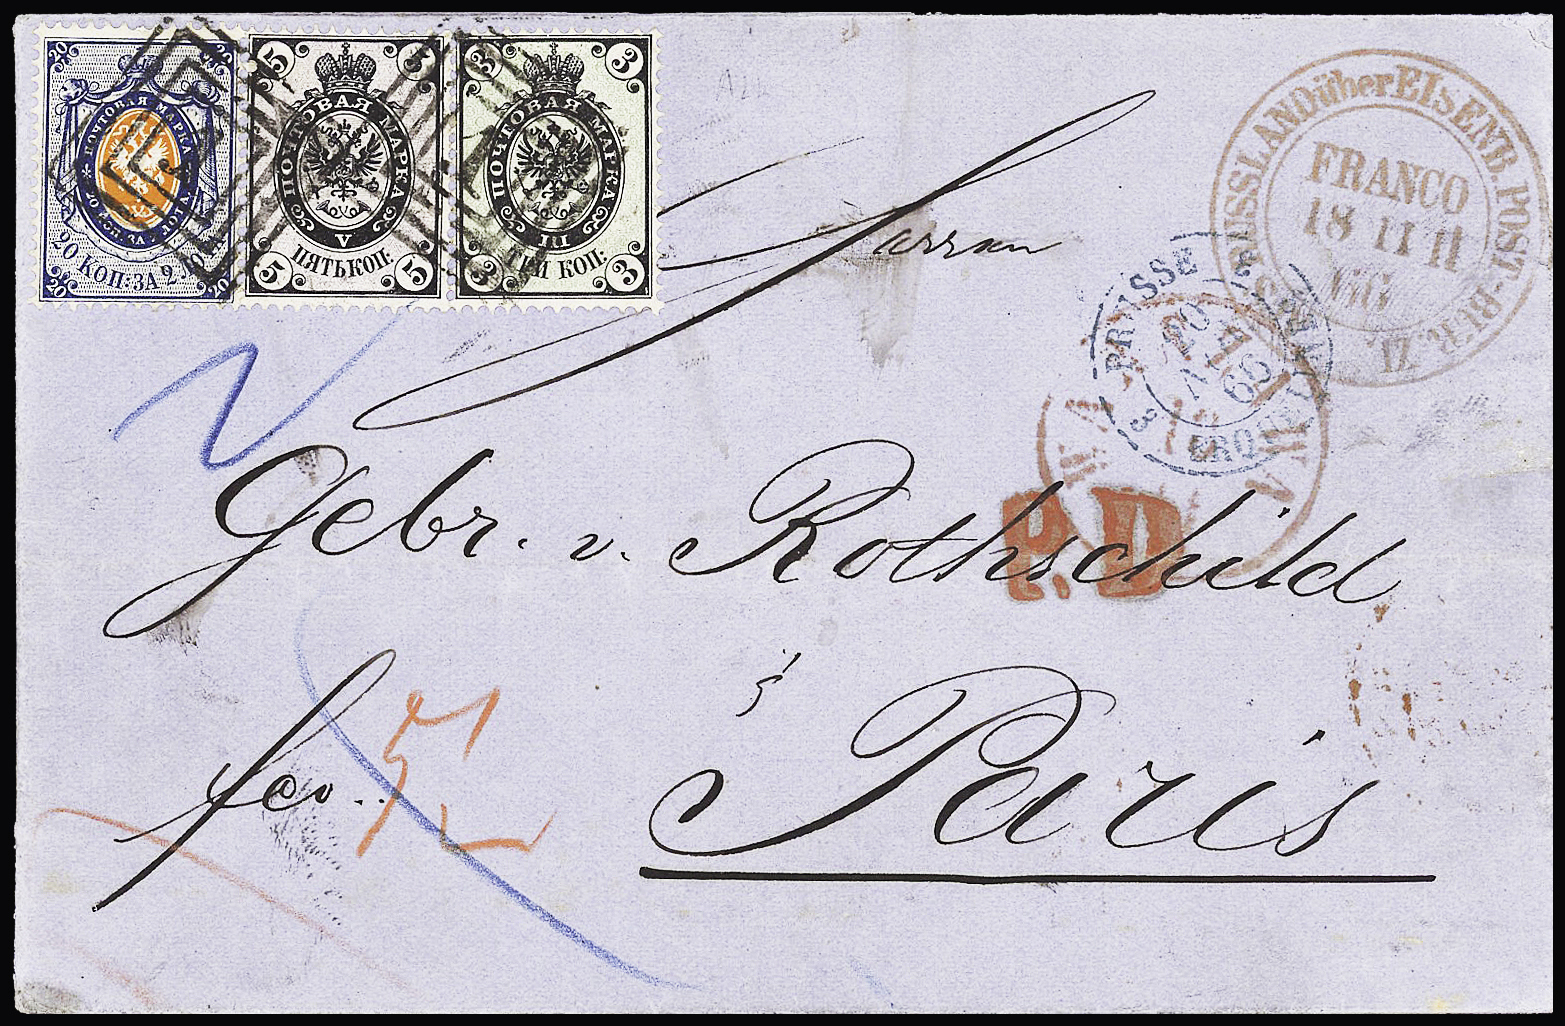 Lot 271 - Eastern Europe » Russia and USSR  -  Le Timbre Classique SA SALE ON OFFERS N ° 37 PARIS